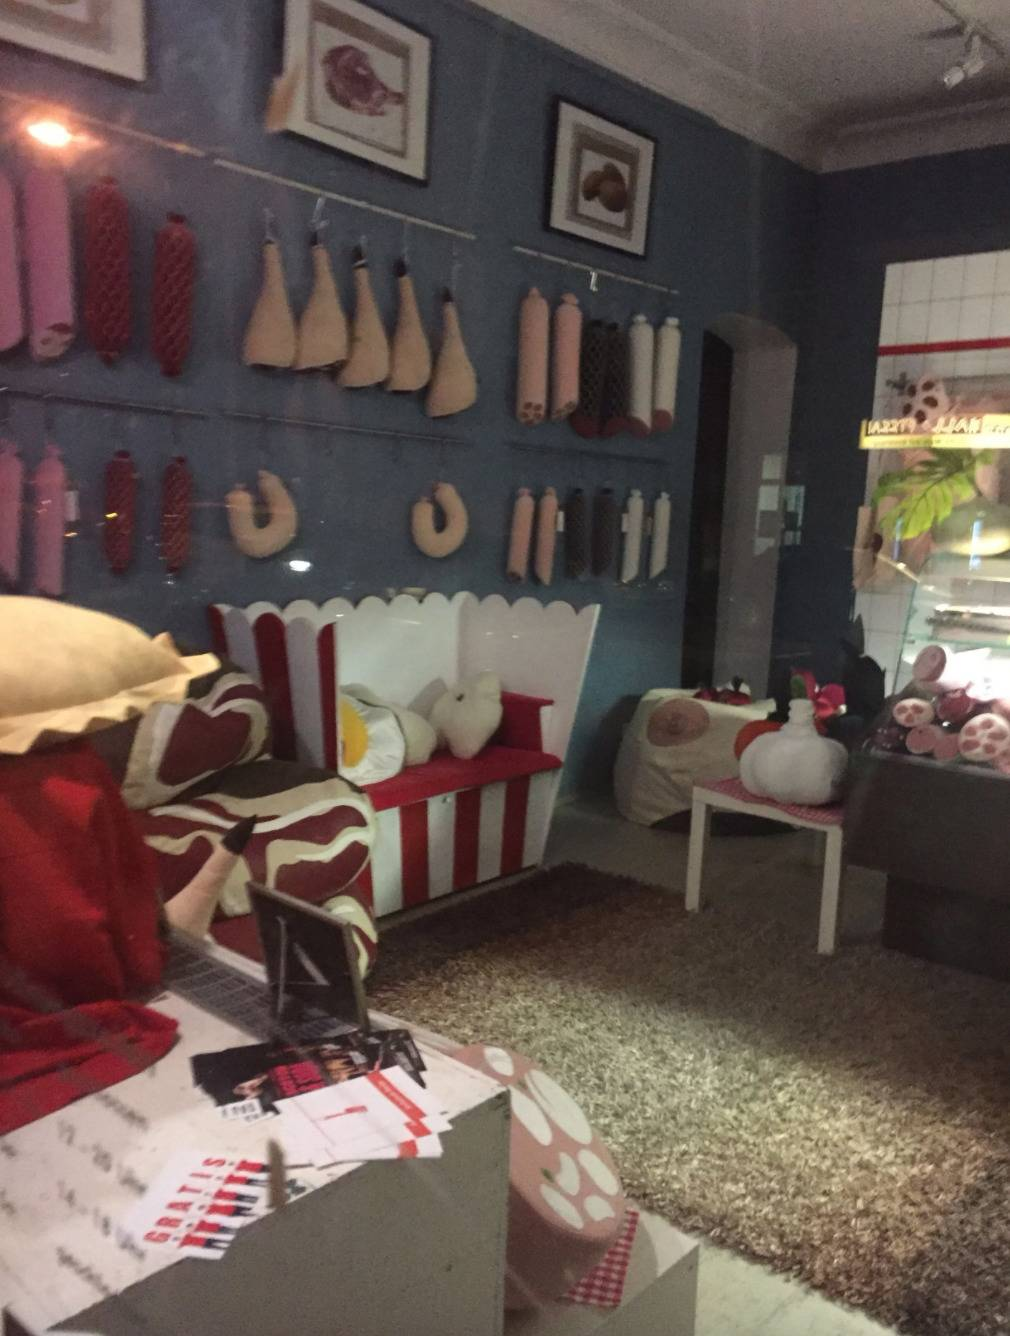 store sells stuffed toys and pillows shaped like meat cuts and sausages